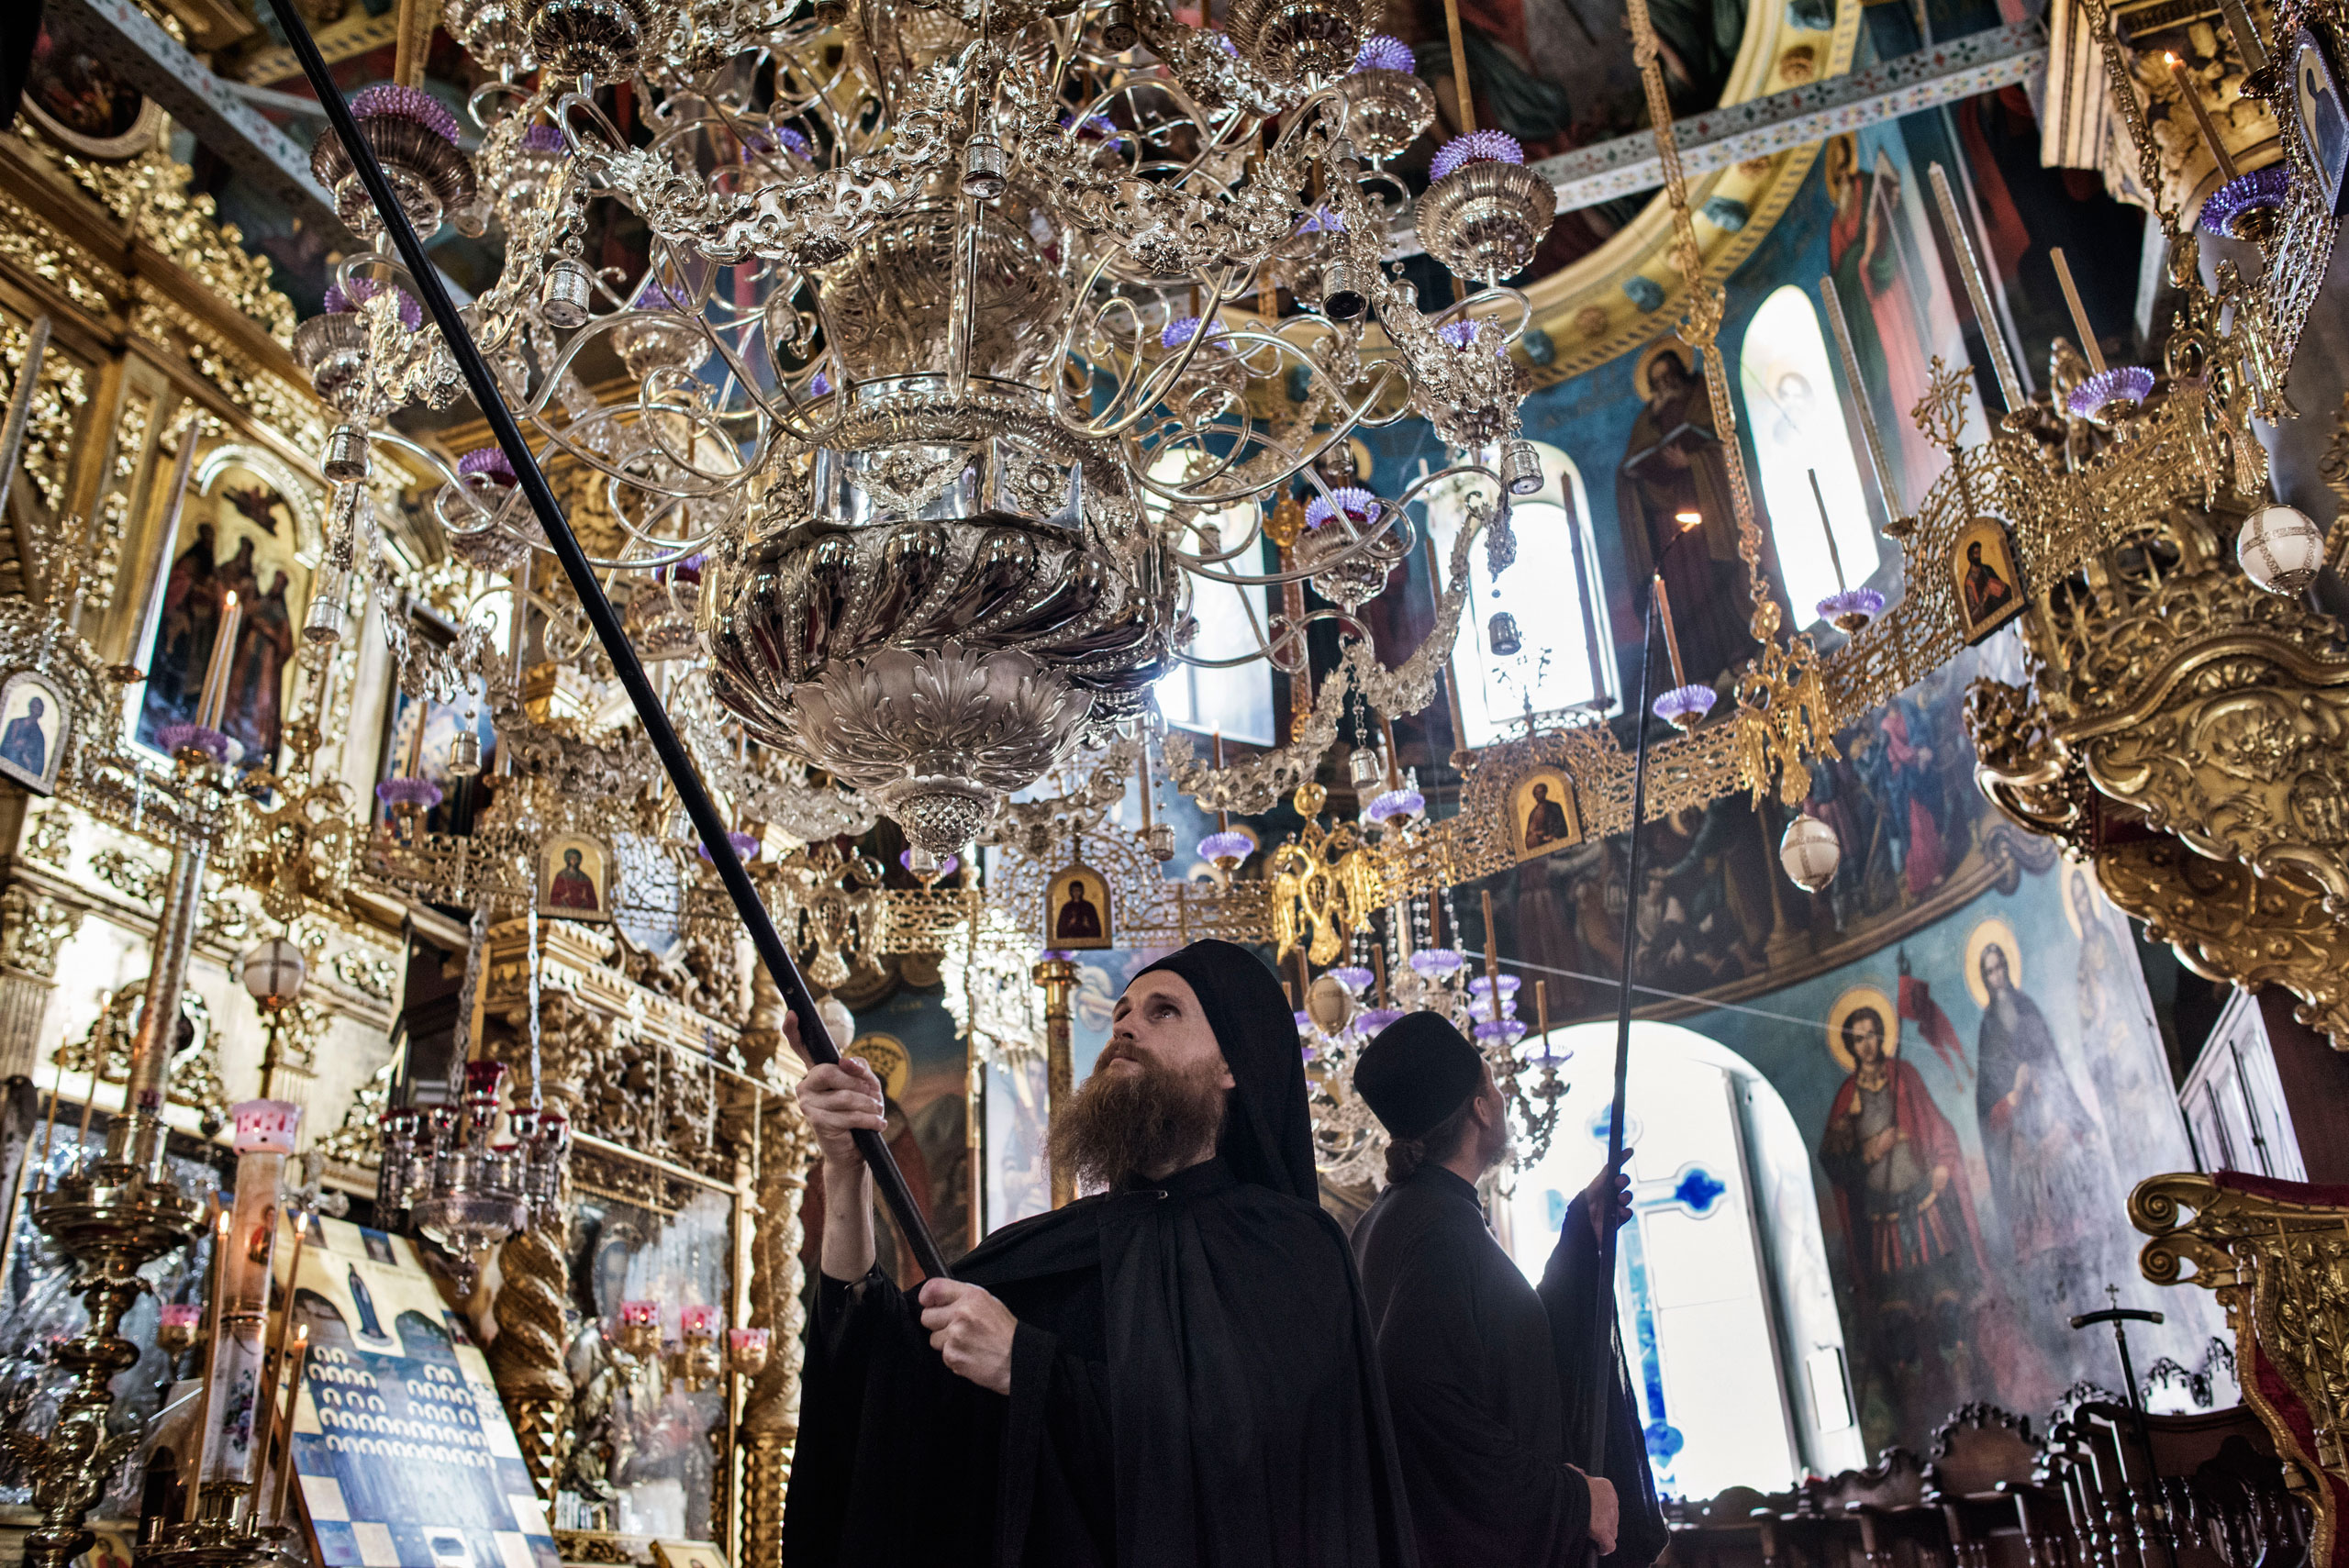 Russian Orthodox monks light candles in preparation for the arrival of Patriarch Kirill, the head of the Russian Orthodox Church, inside the Monastery of St. Panteleimon, otherwise known as Rossikon ( The Russian ), May 27, 2016.